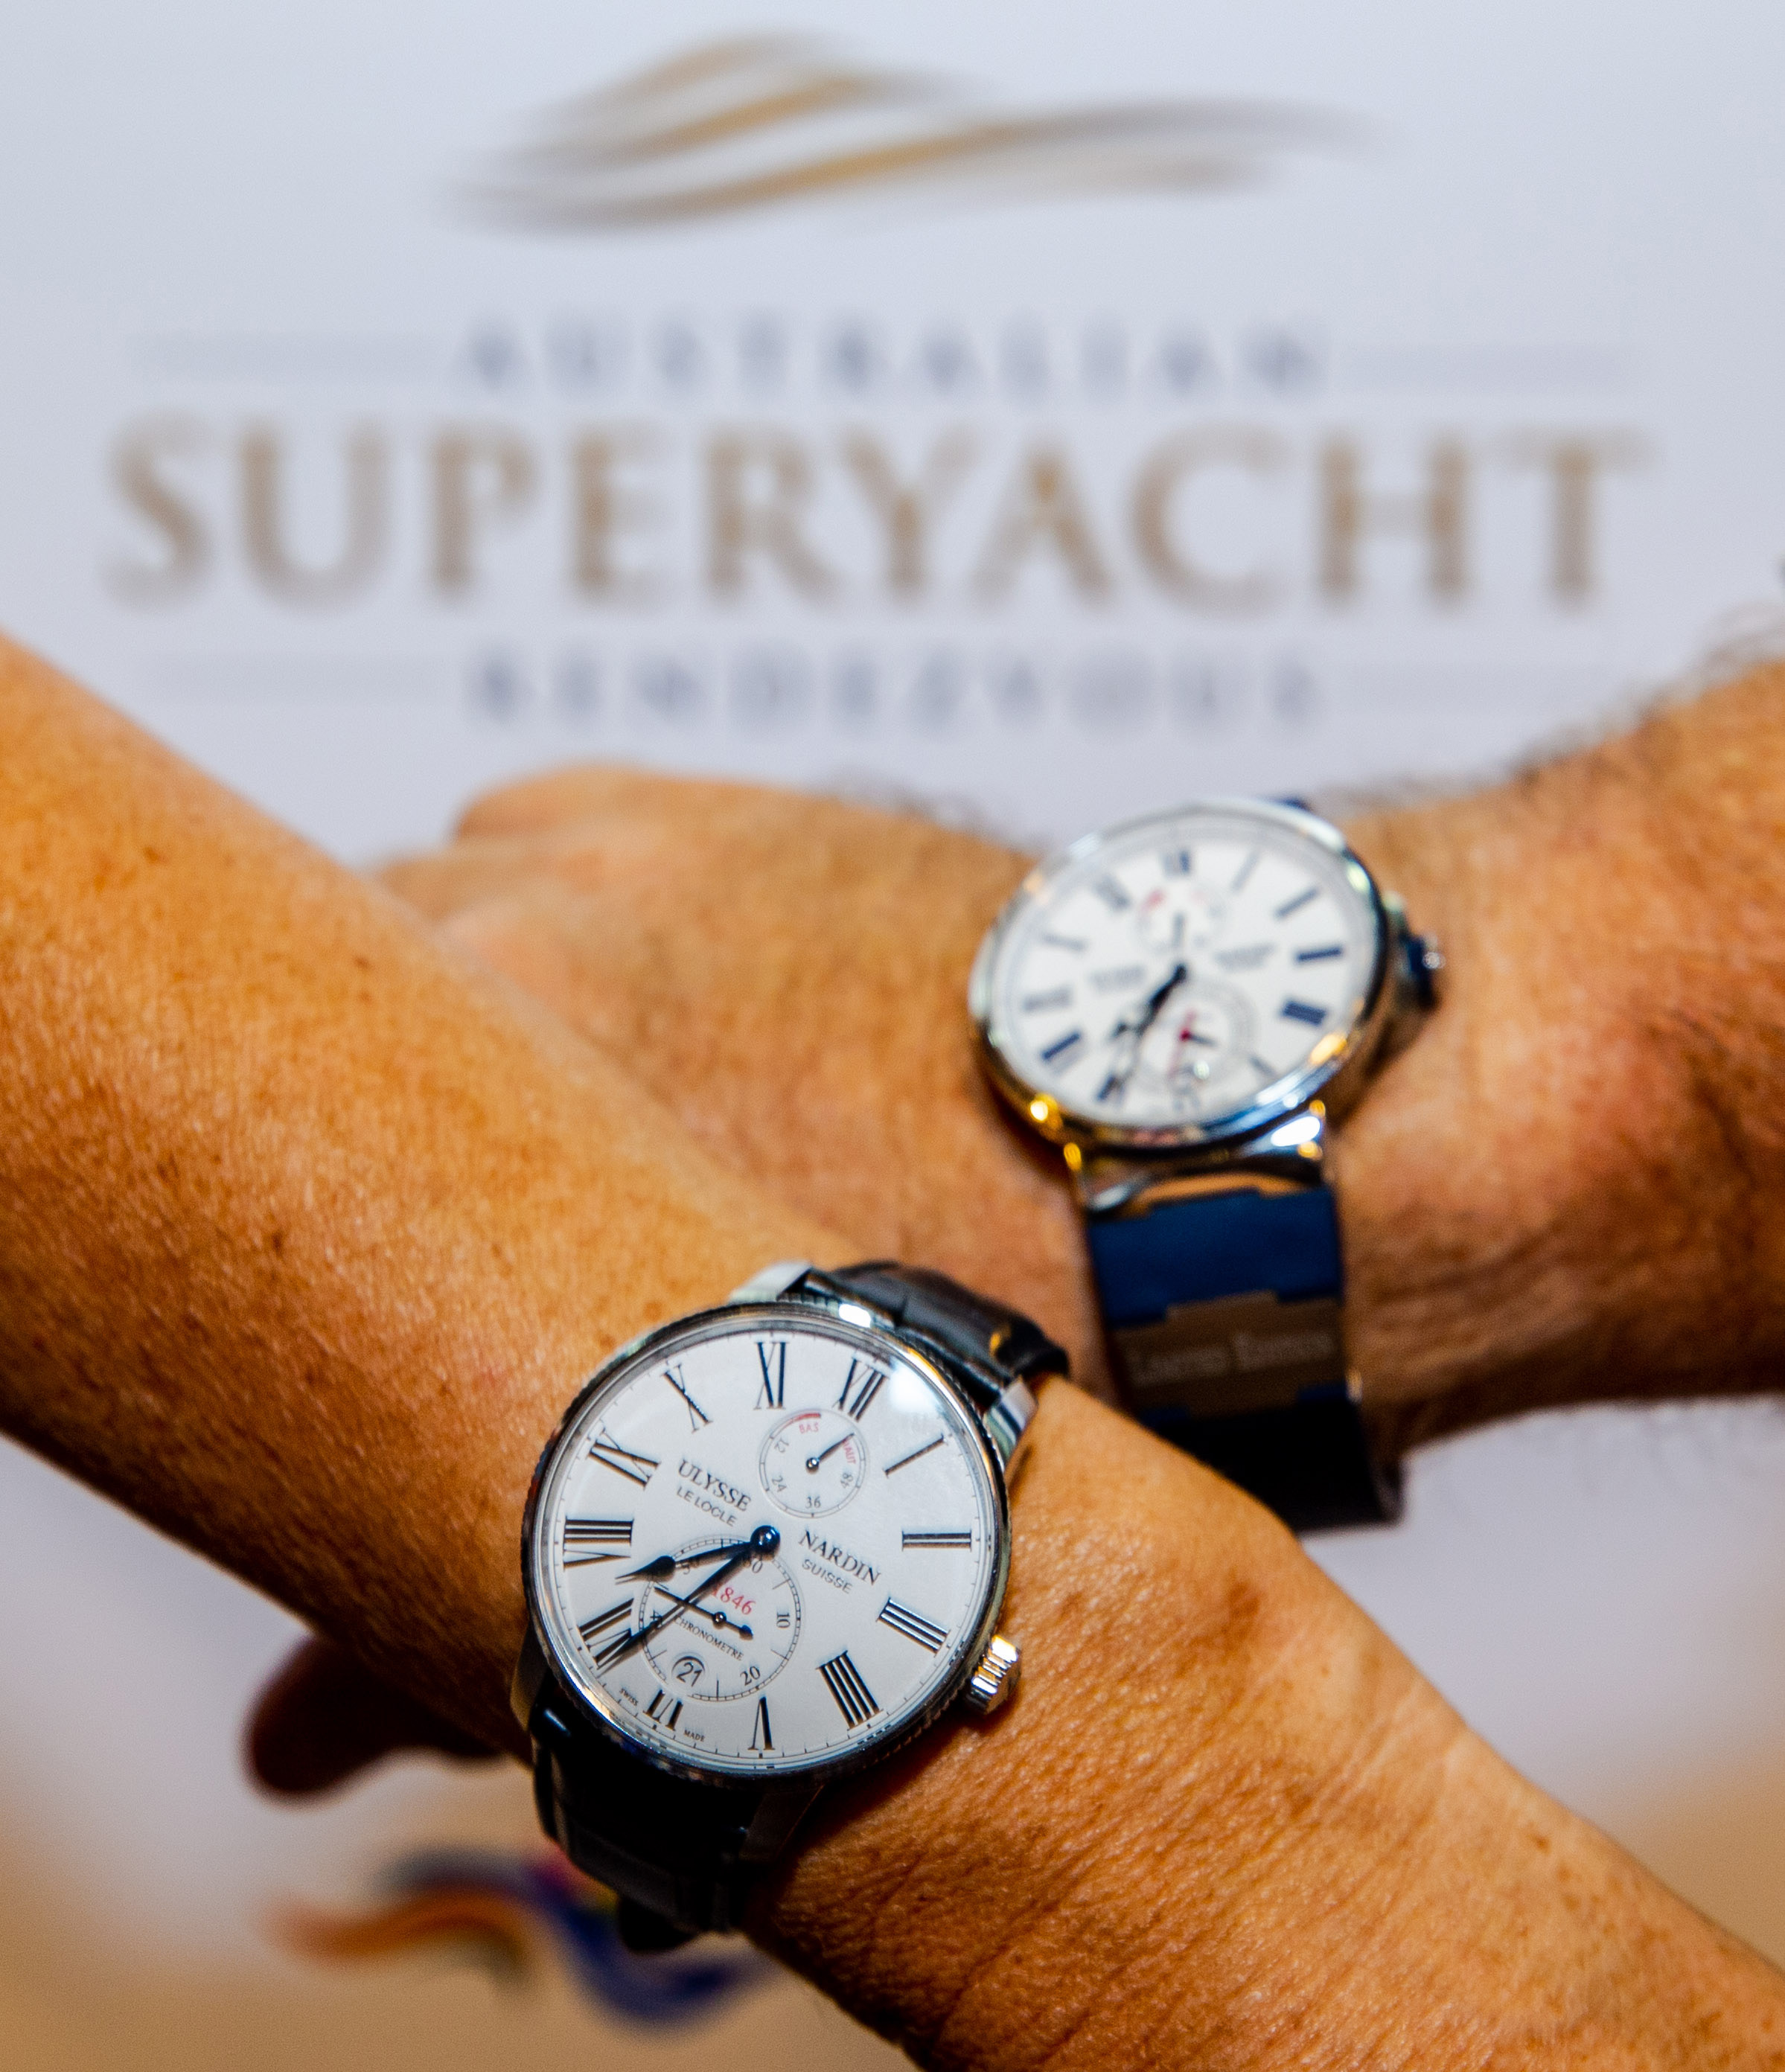 Lucury brands at the Australian Superyacht Rendezvous